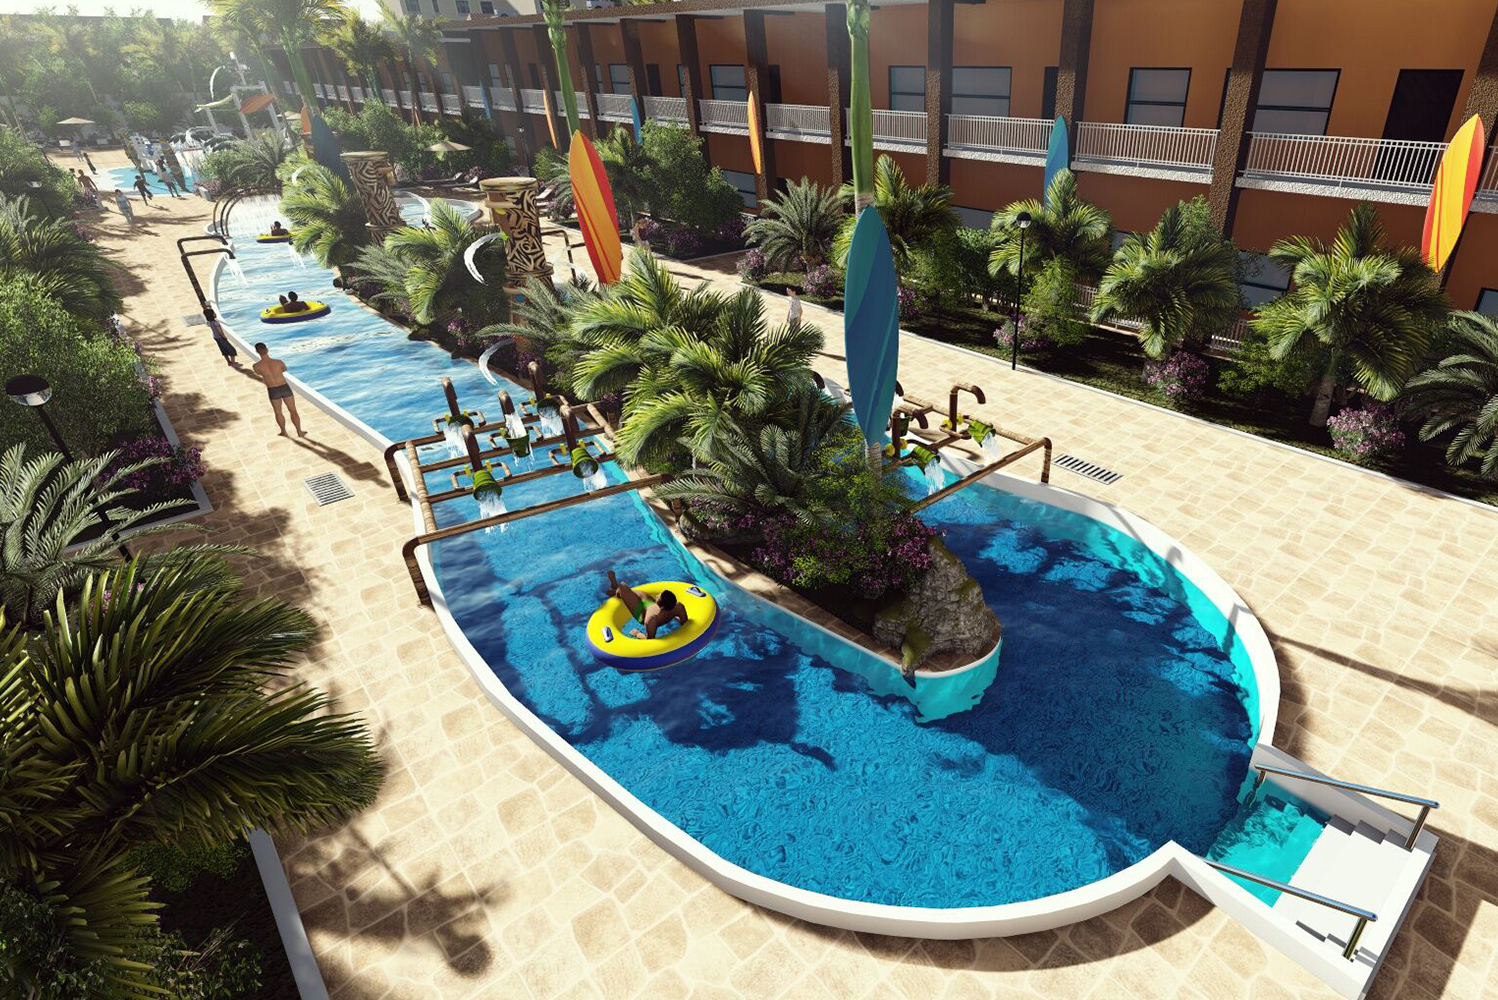 The waterpark will have action slides, a splash pad and a 335-foot lazy river.